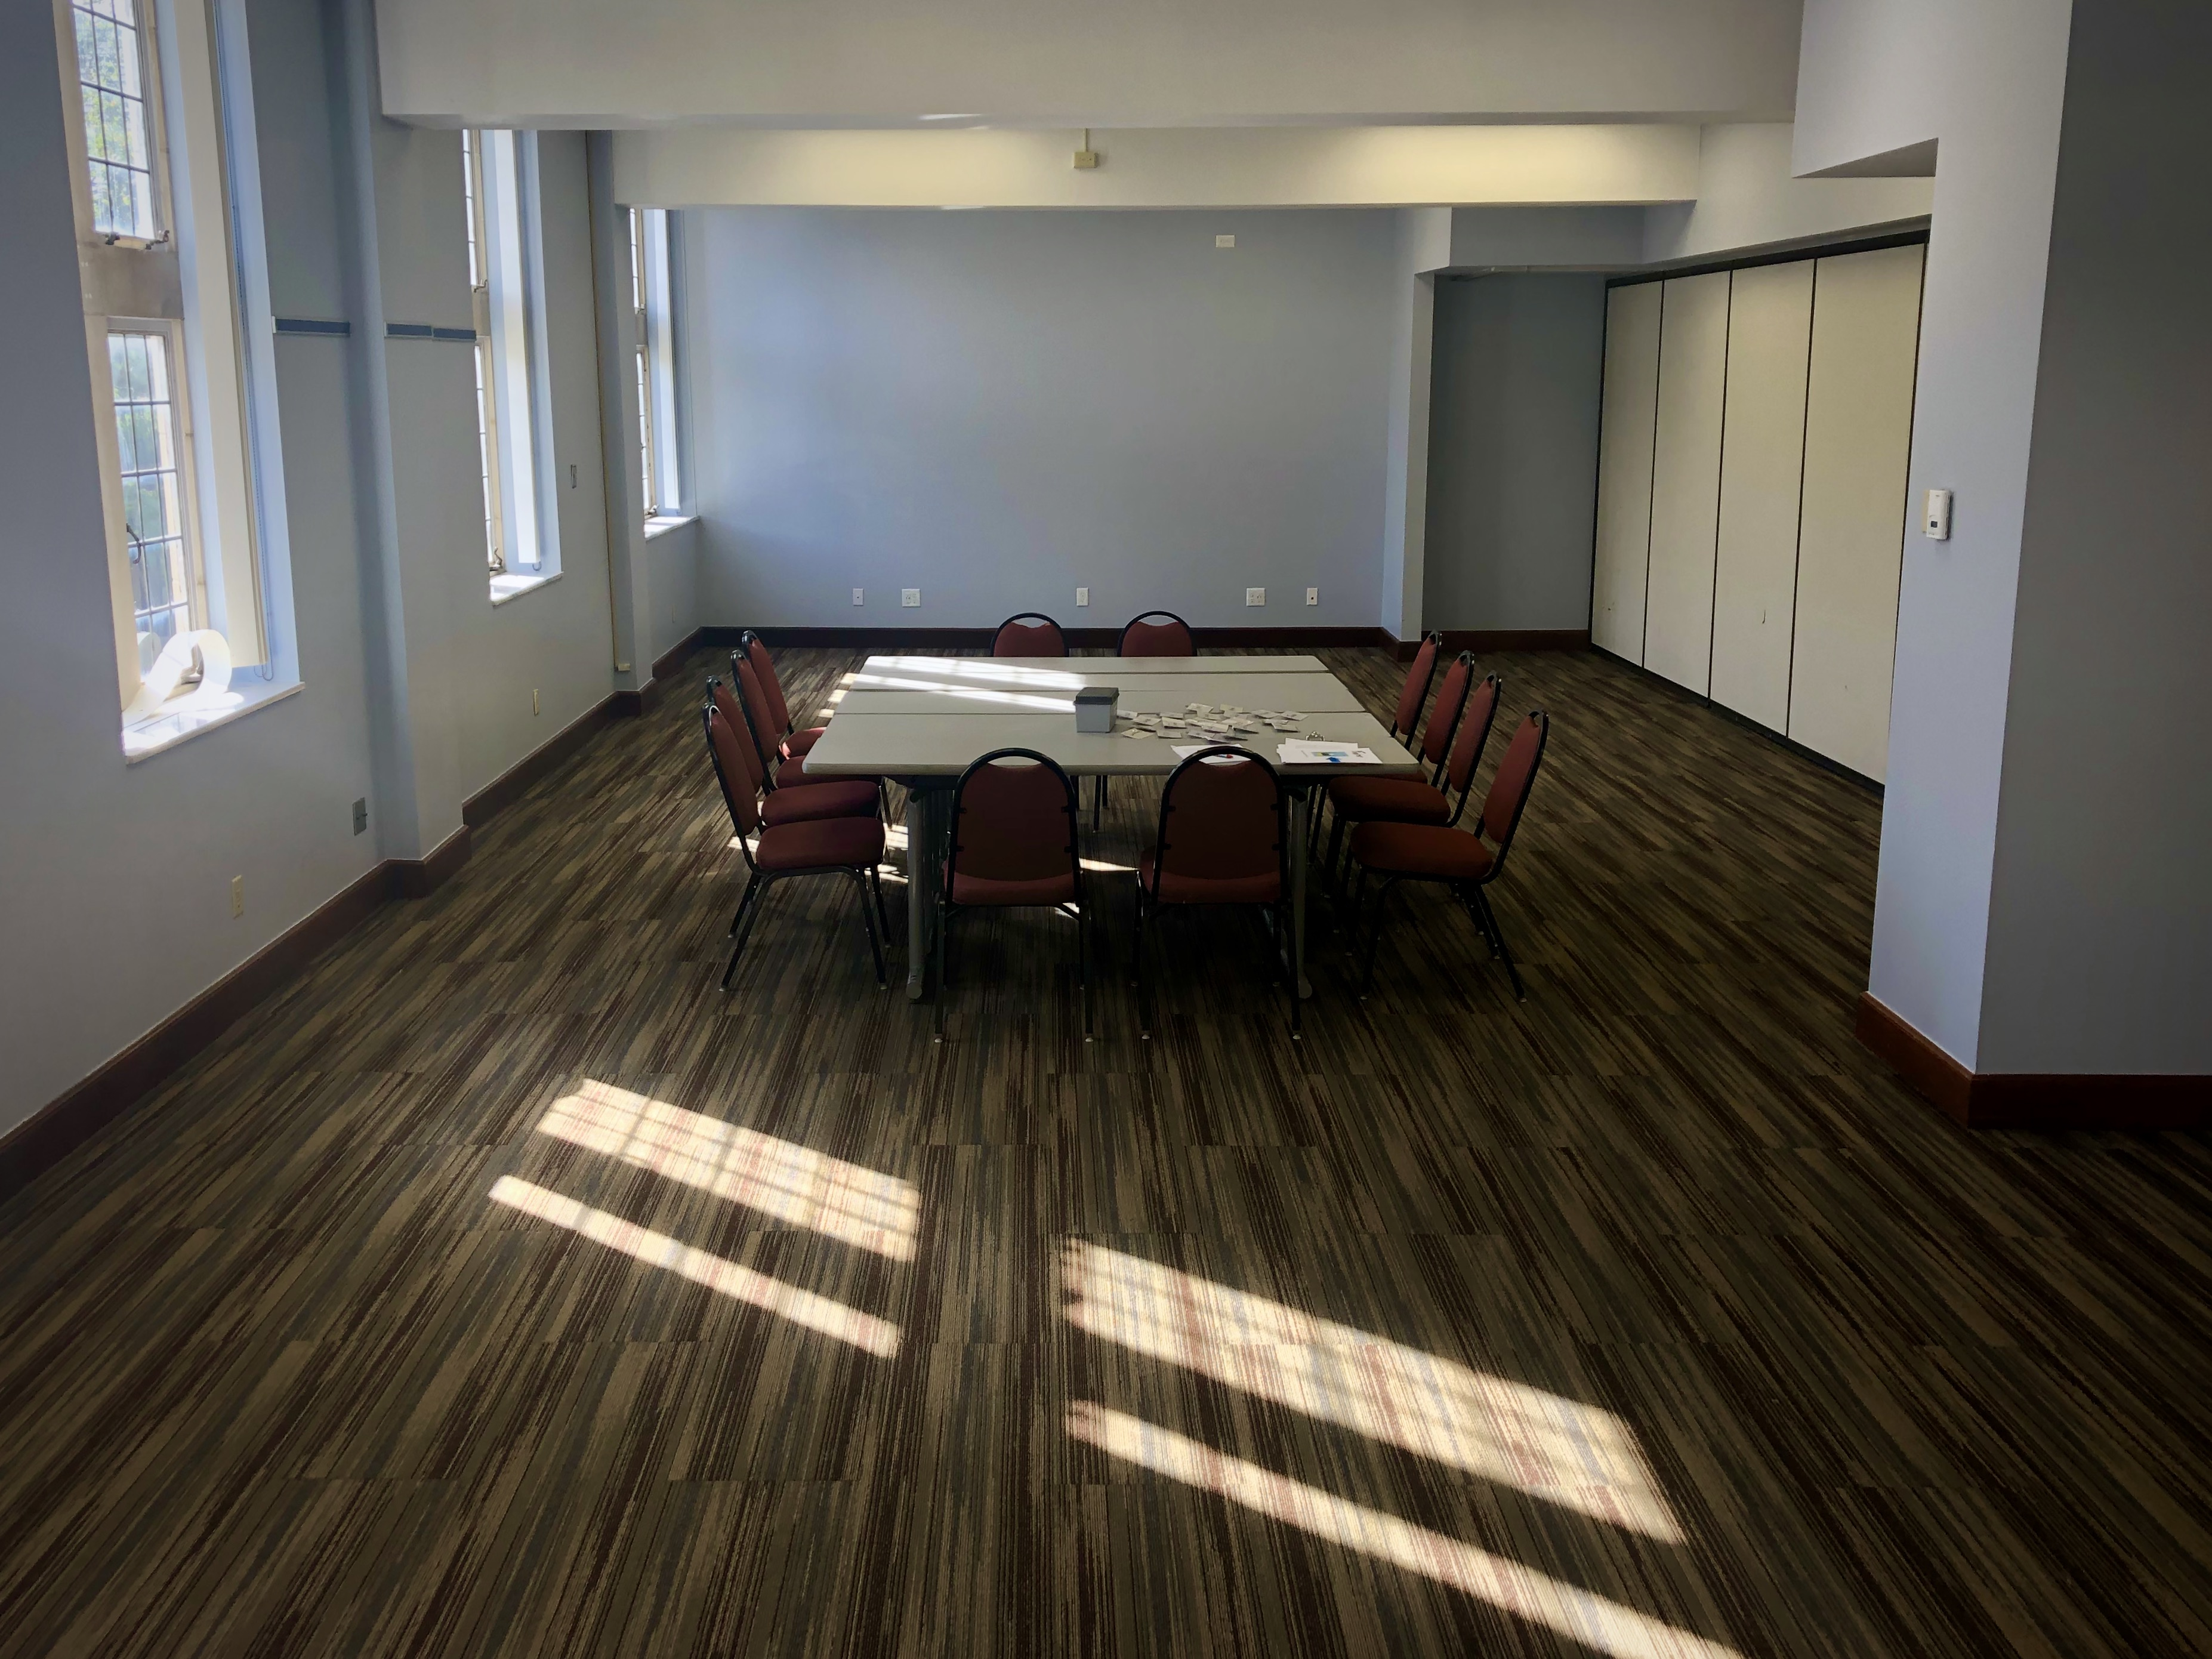 Large room with conference table and chairs